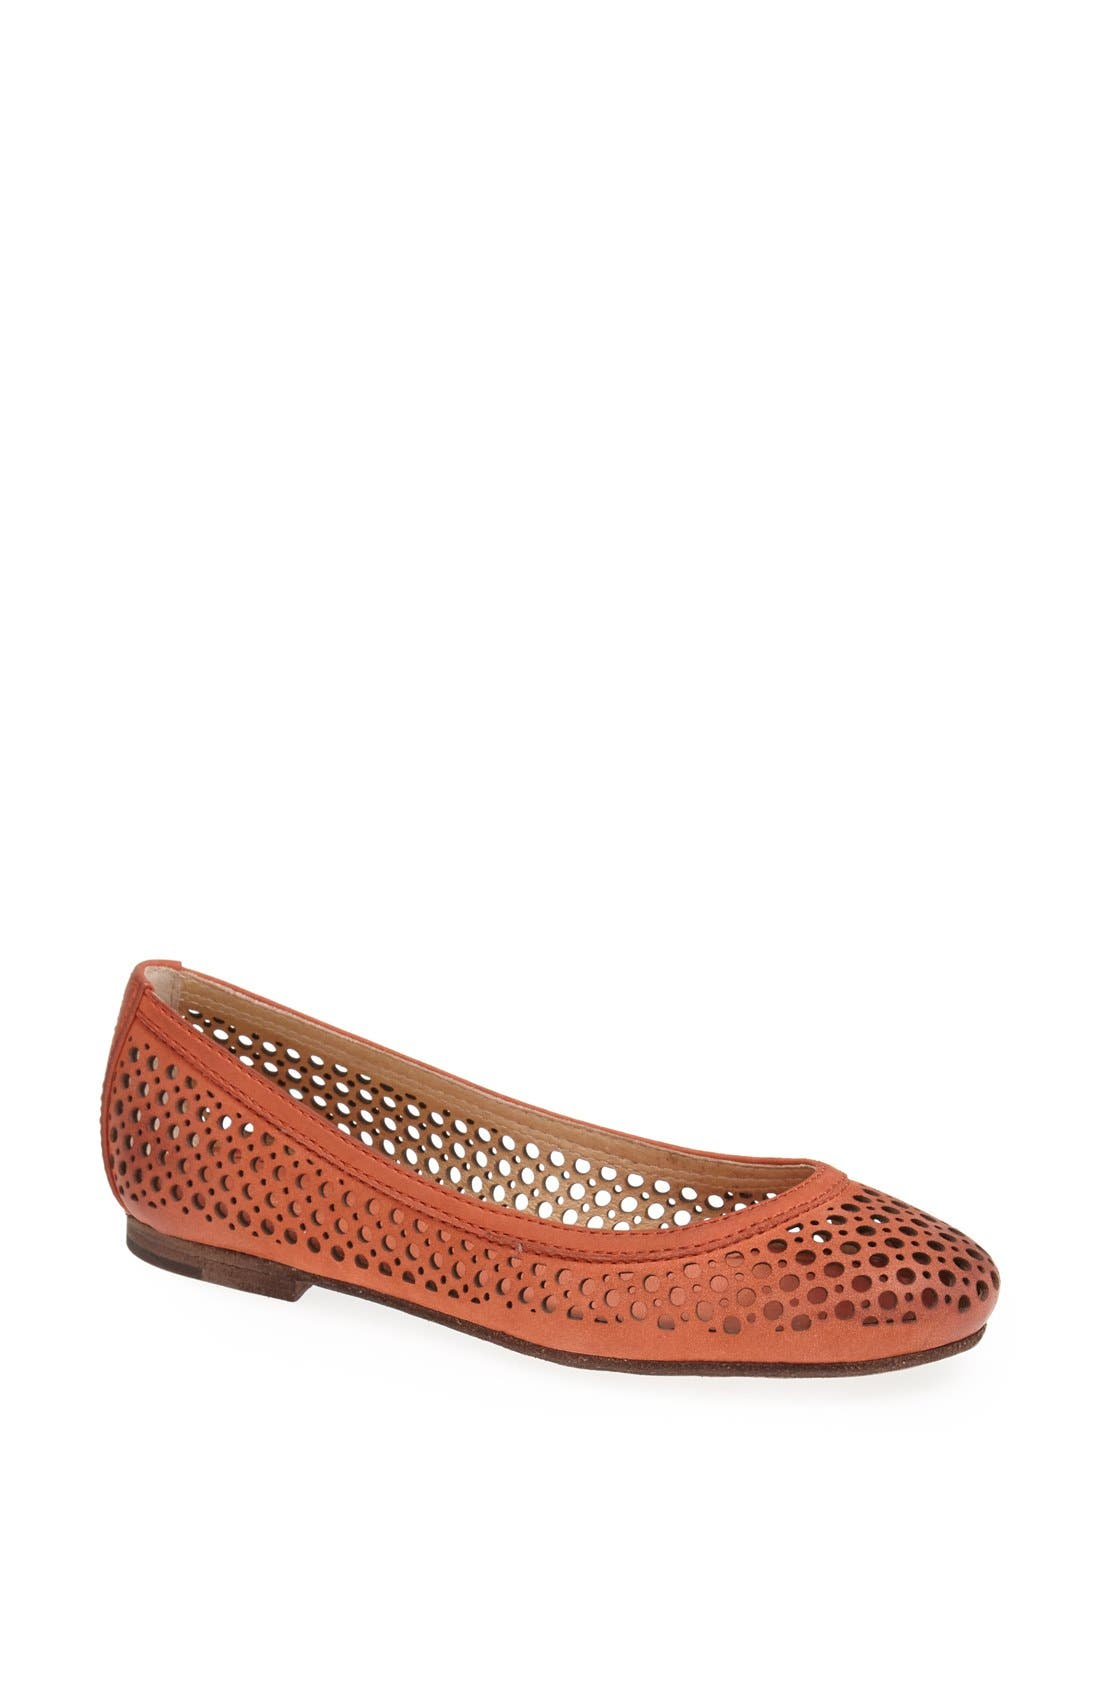 Main Image - Frye 'Carson' Perforated Leather Ballet Flat